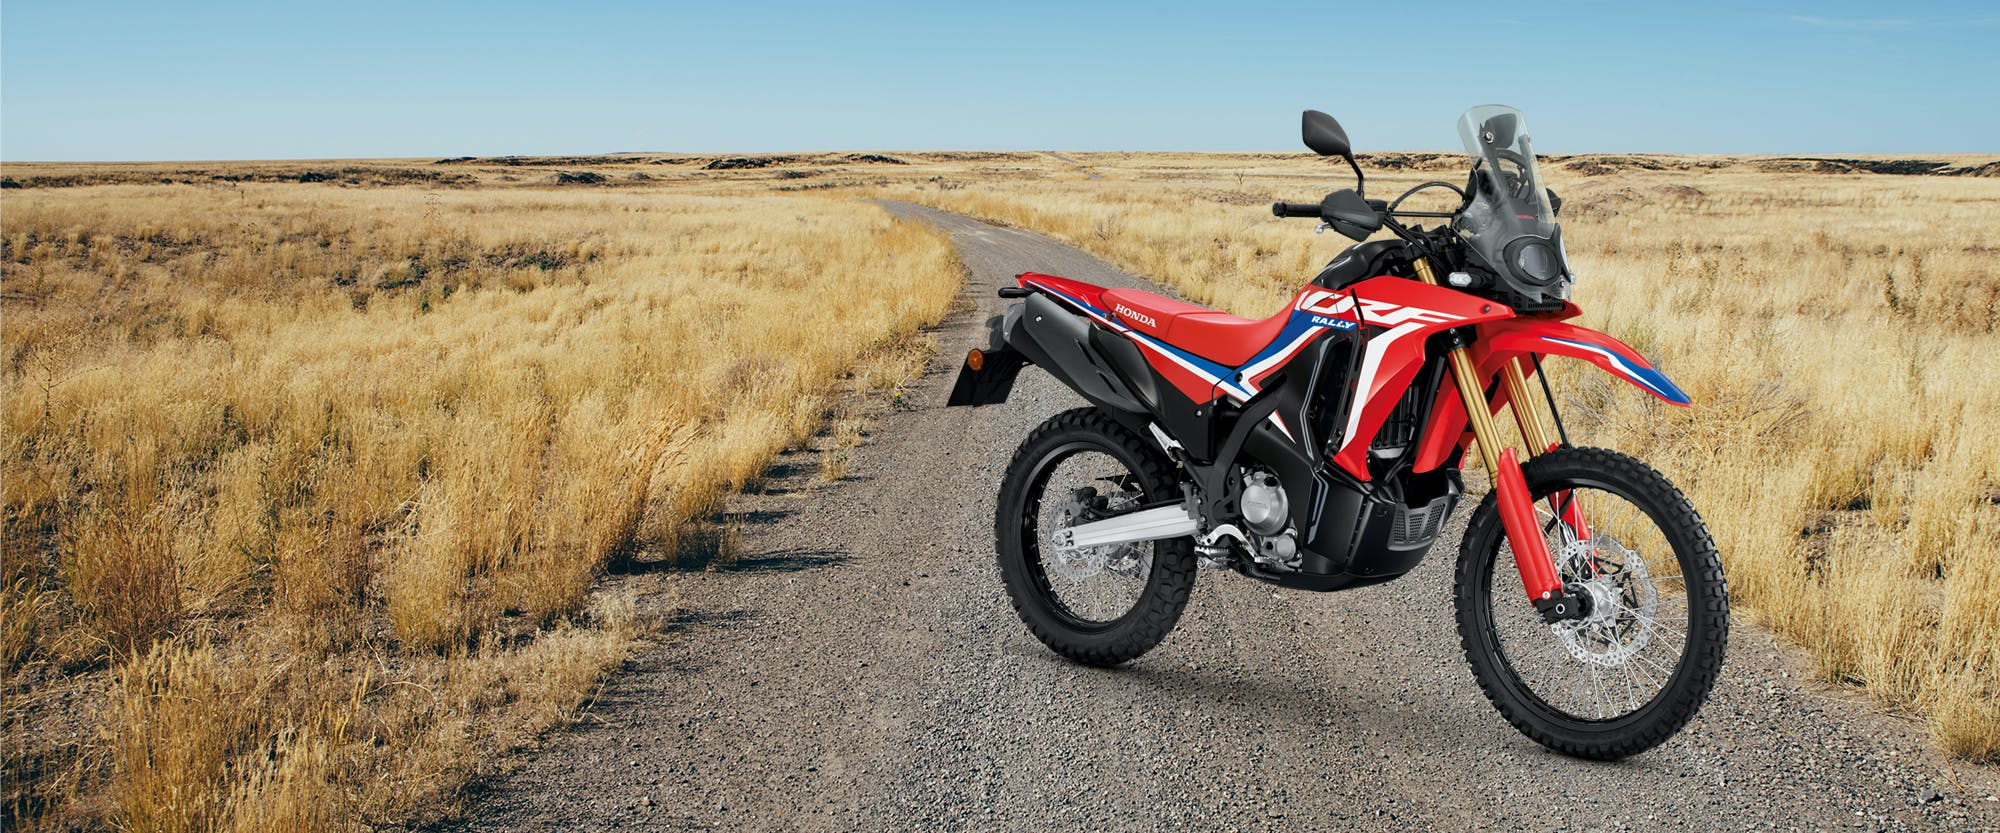 CRF300 Rally in extreme red colour, parked